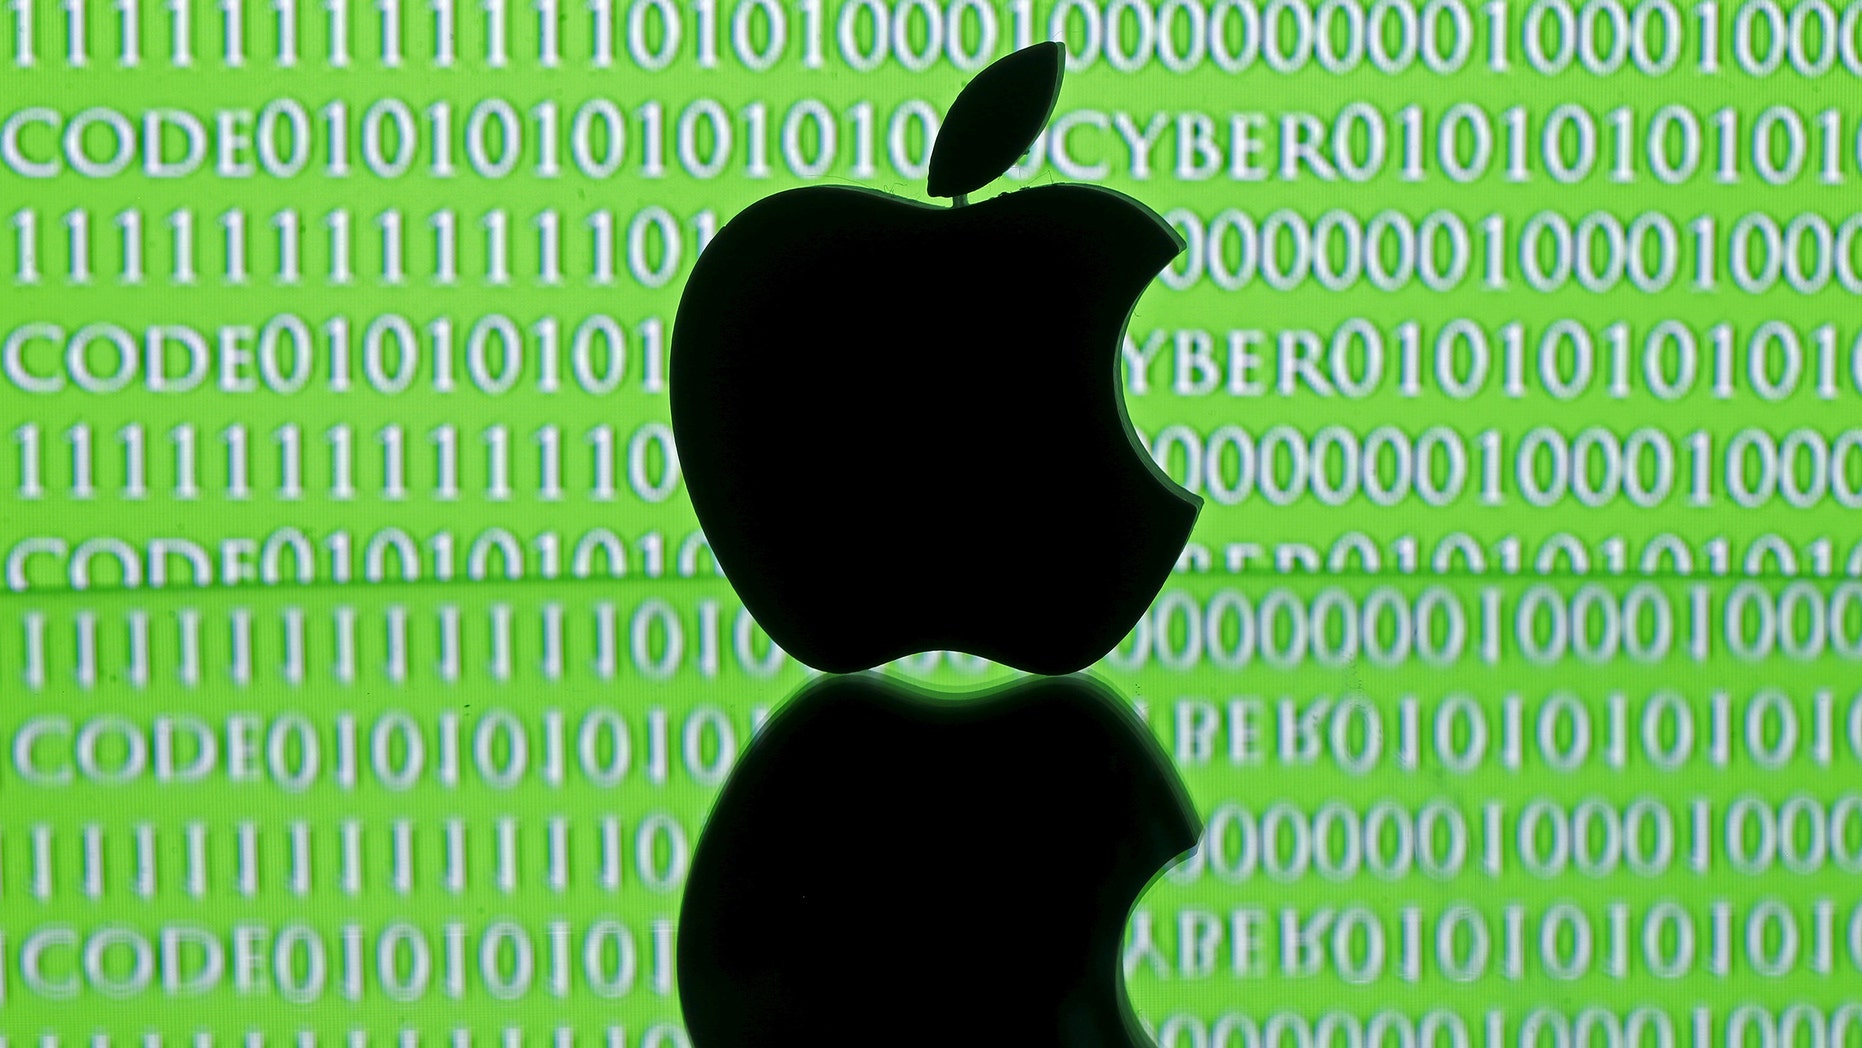 A 3D-printed Apple logo is seen in front of a displayed cyber code in this illustration taken Feb. 26, 2016.